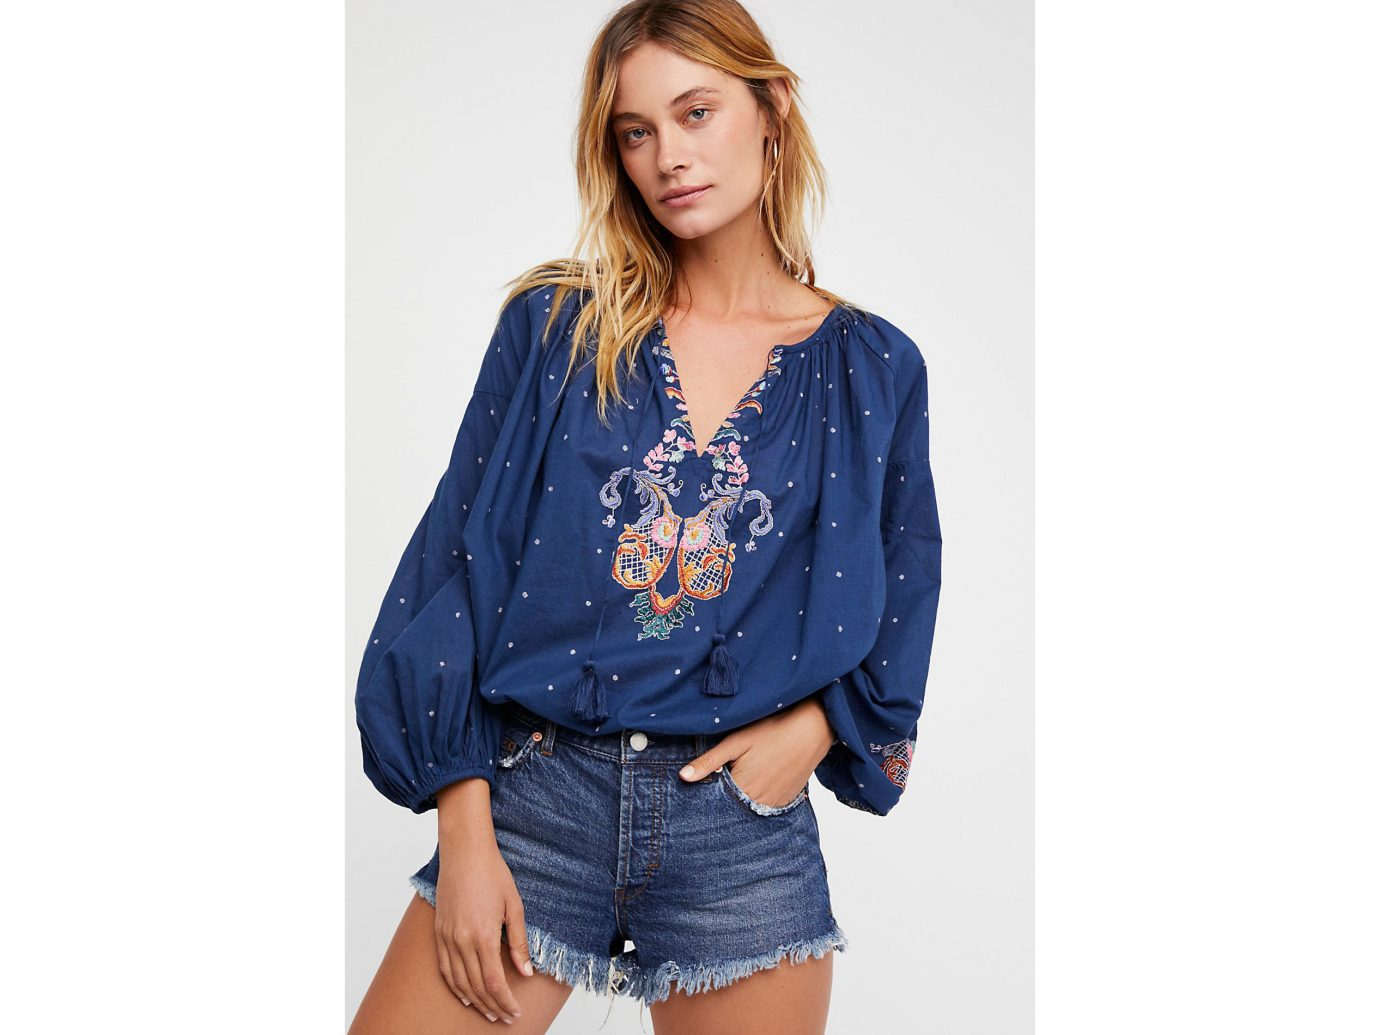 Morocco Packing Tips Style + Design Travel Shop person clothing fashion model shoulder standing posing denim jeans sleeve model neck blouse joint electric blue supermodel